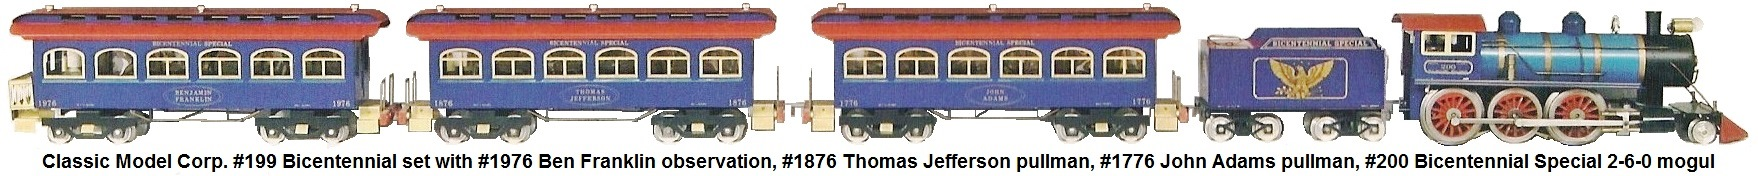 Classic Model Corp. Standard gauge #199 Bicentennial set included the #1776 John Adams pullman, the #1876 Thomas Jefferson pullman and the #1976 Ben Franklin observation, and was designed to be pulled by the #200 Bicentennial Special mogul released in 1976